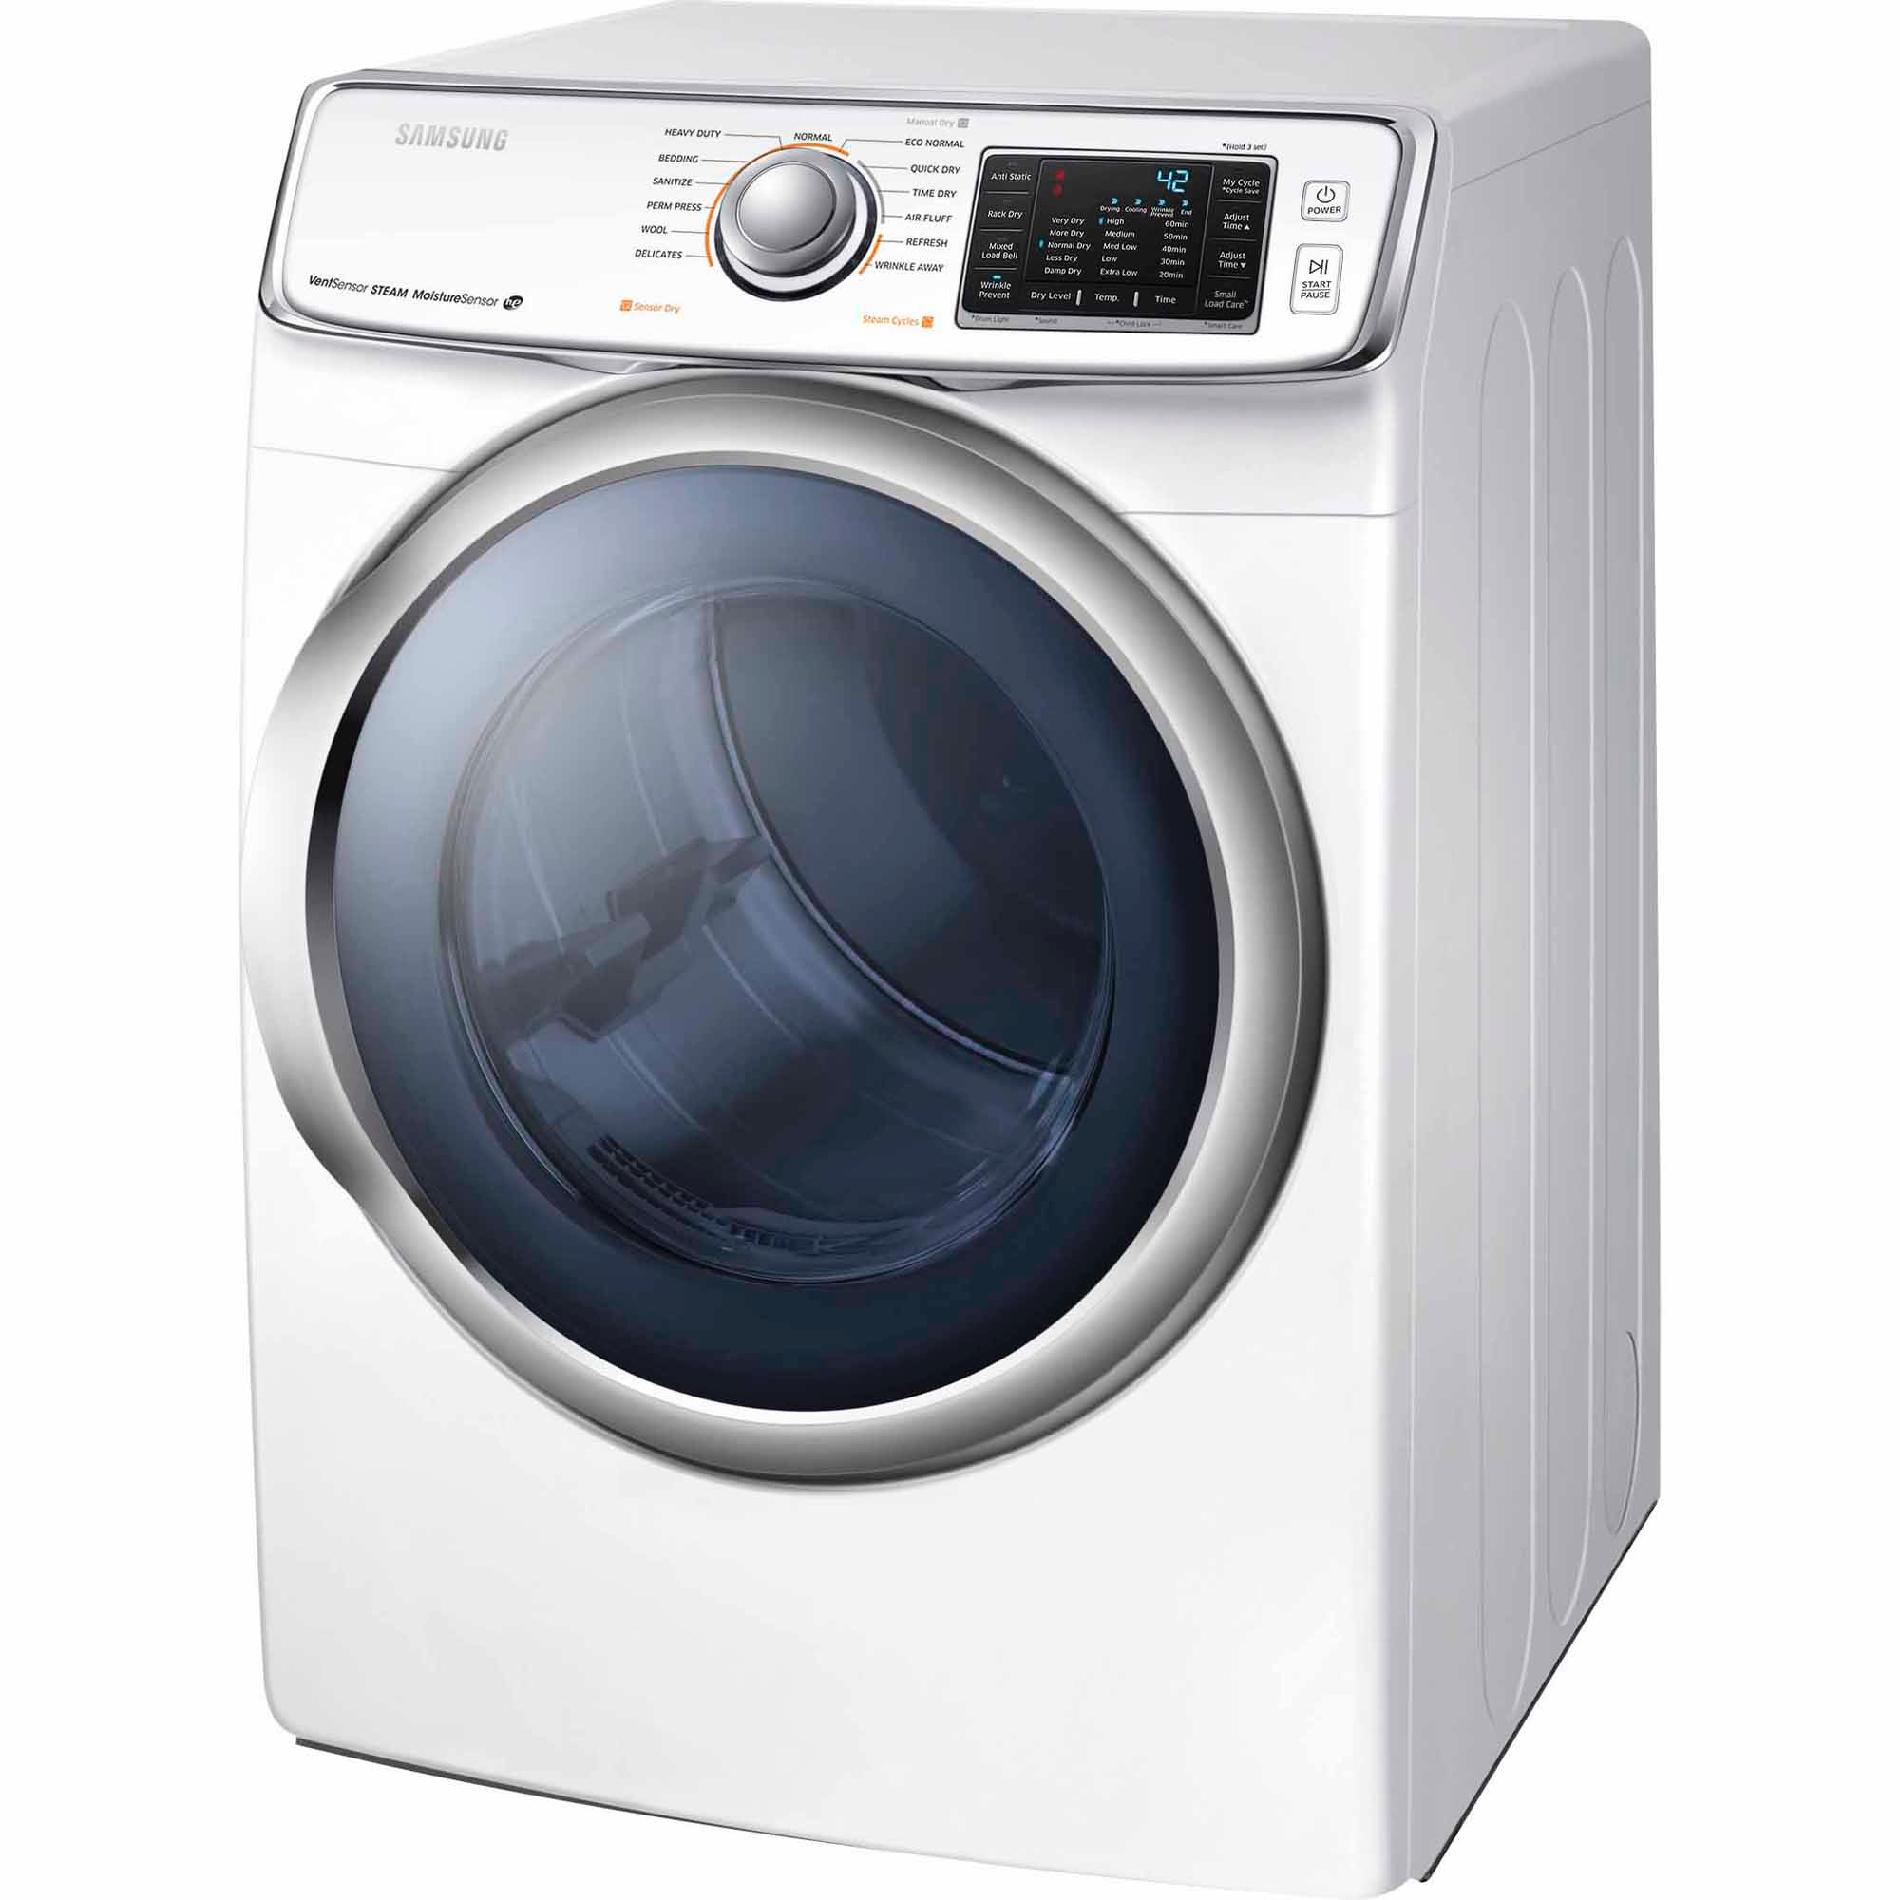 Samsung DV45H6300GW 7.5 cu. ft. Gas Dryer - White